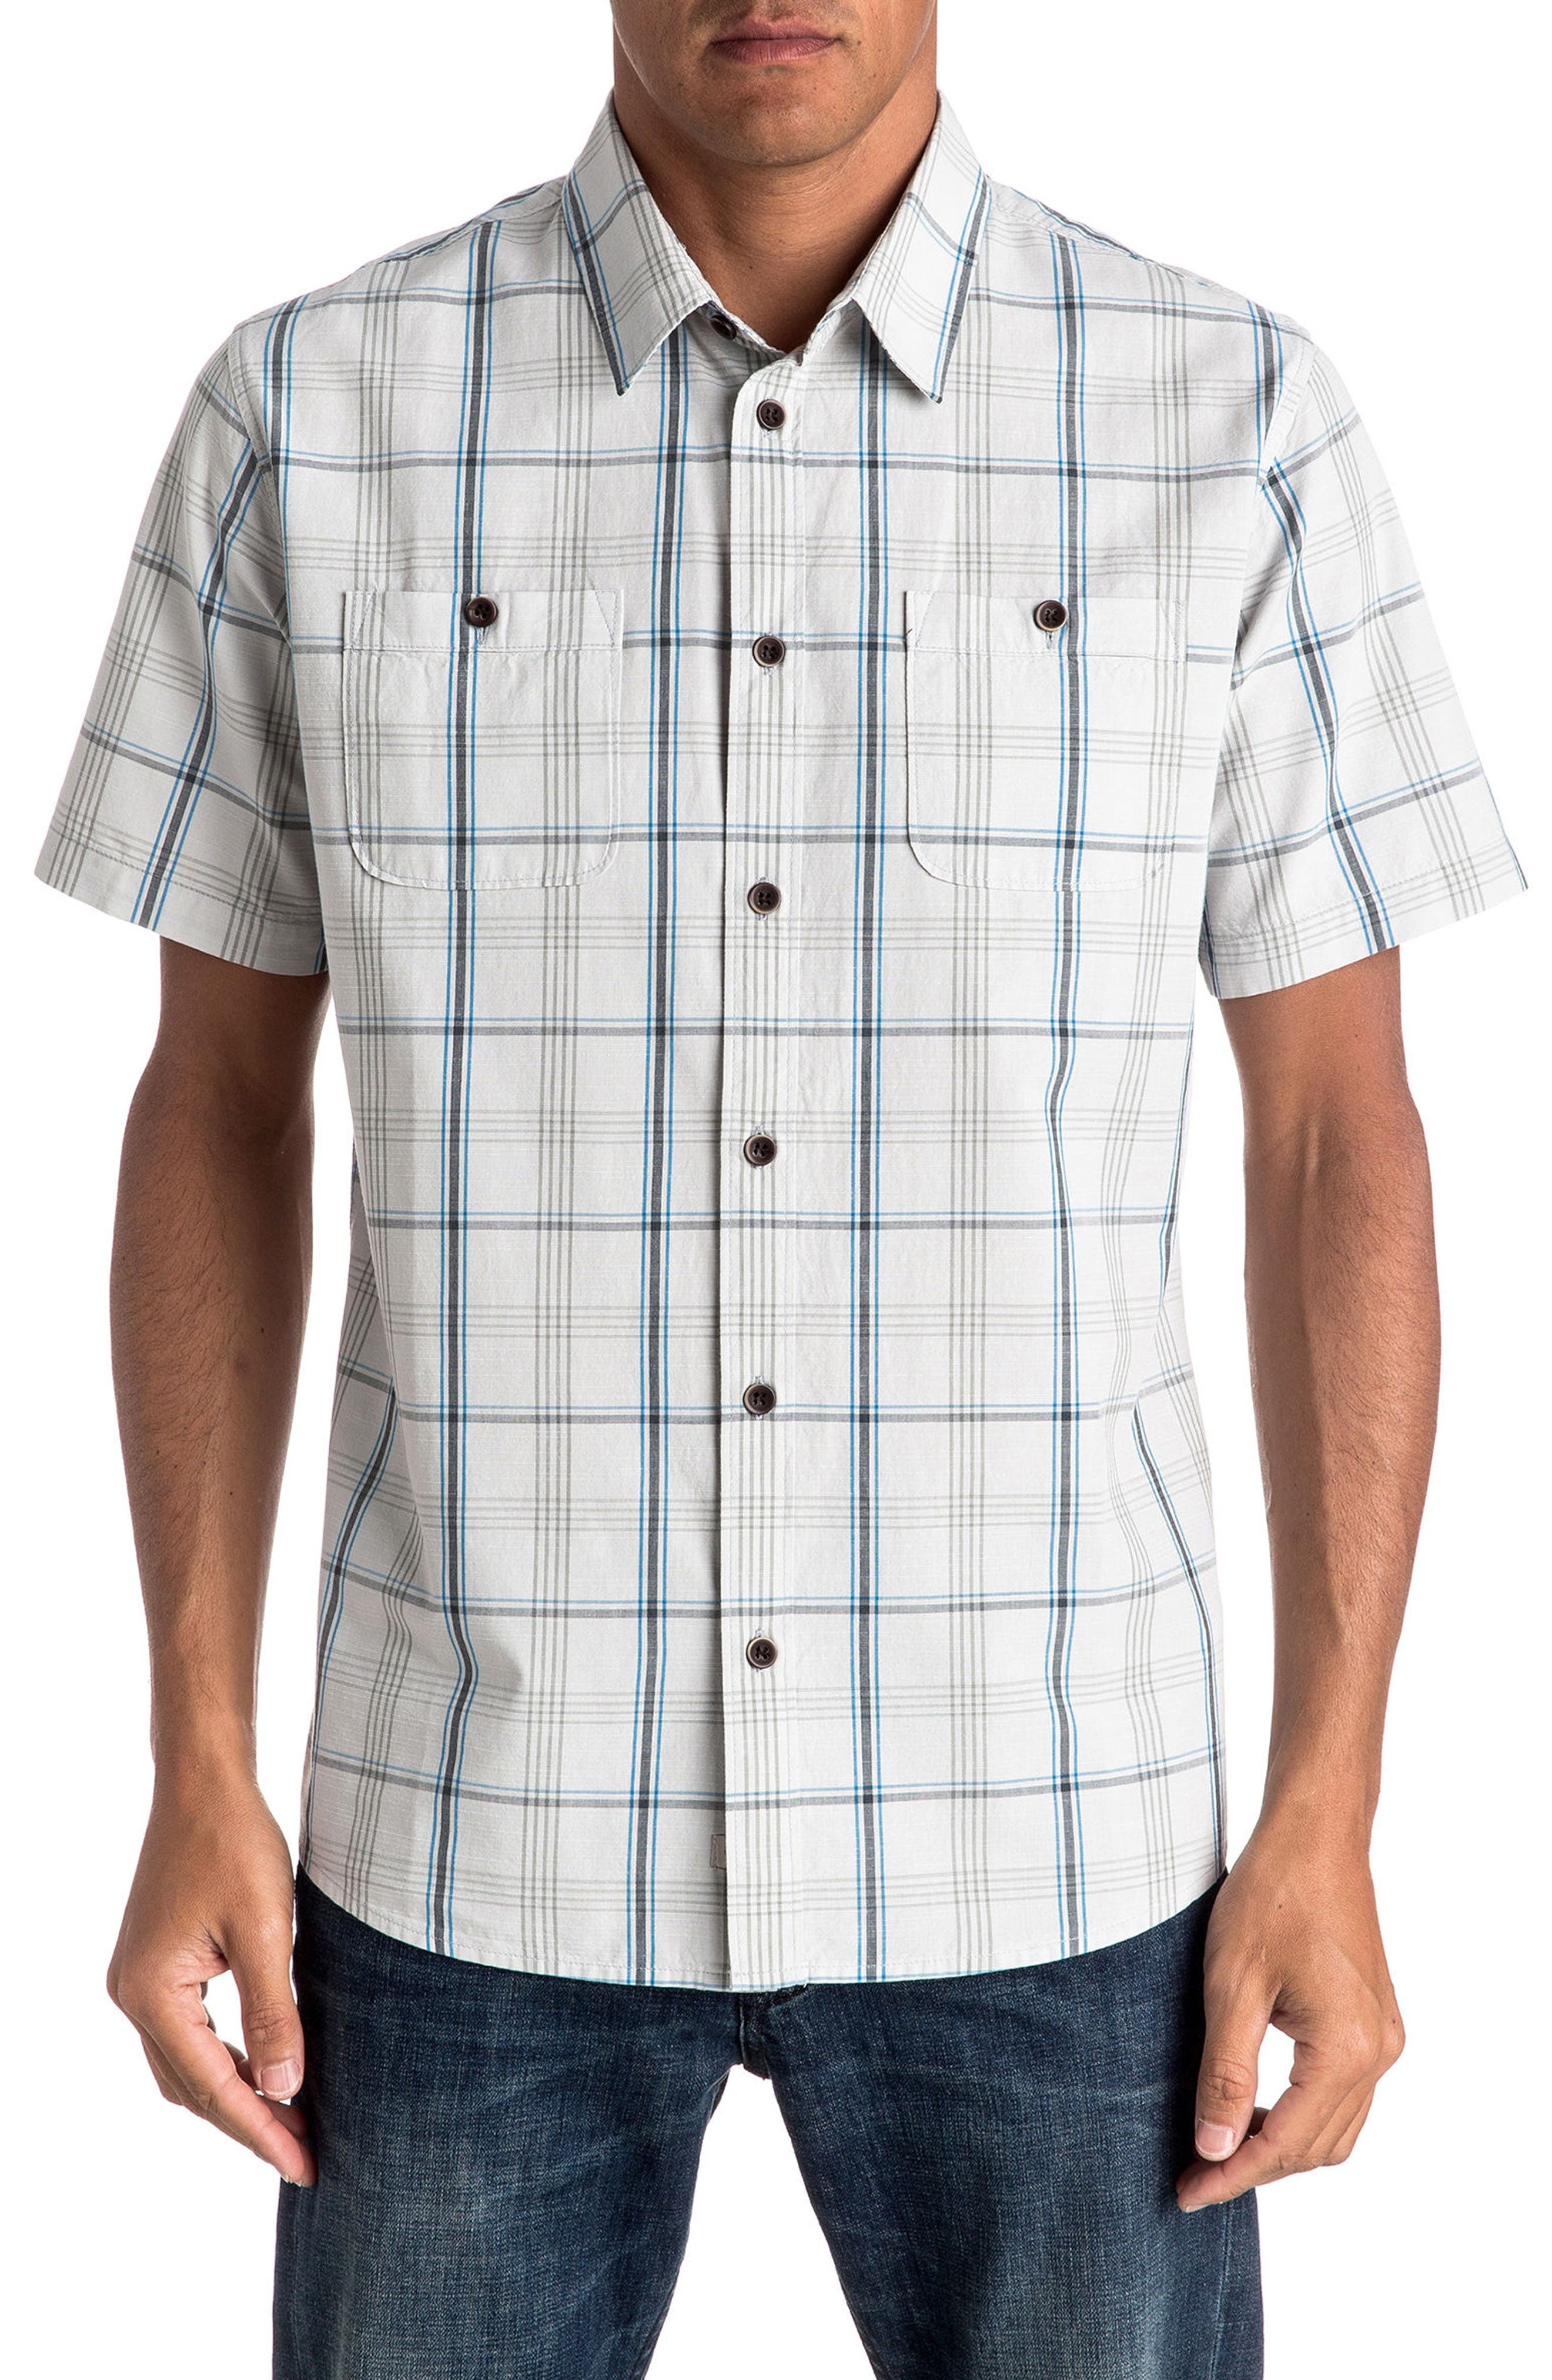 Quiksilver Waterman Collection Reform Tailored Fit Plaid Sport Shirt